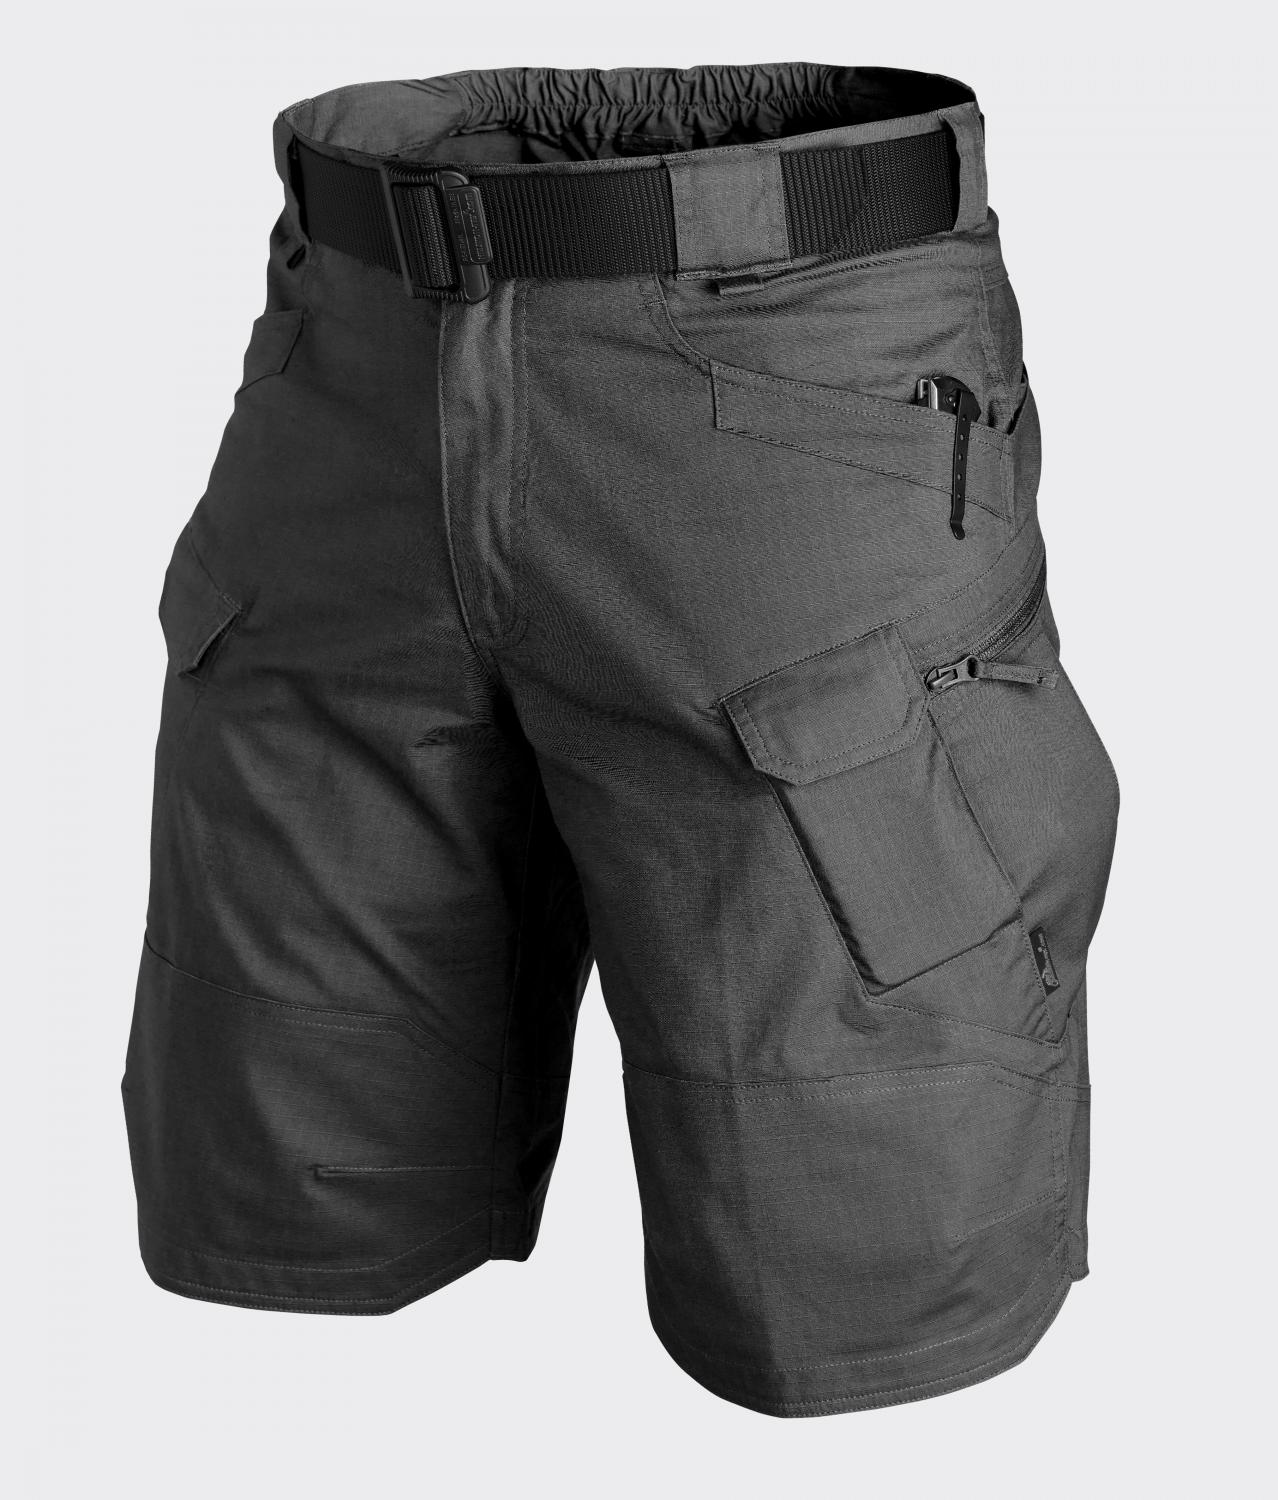 URBAN TACTICAL SHORTS® 11'' - PolyCotton Ripstop Black